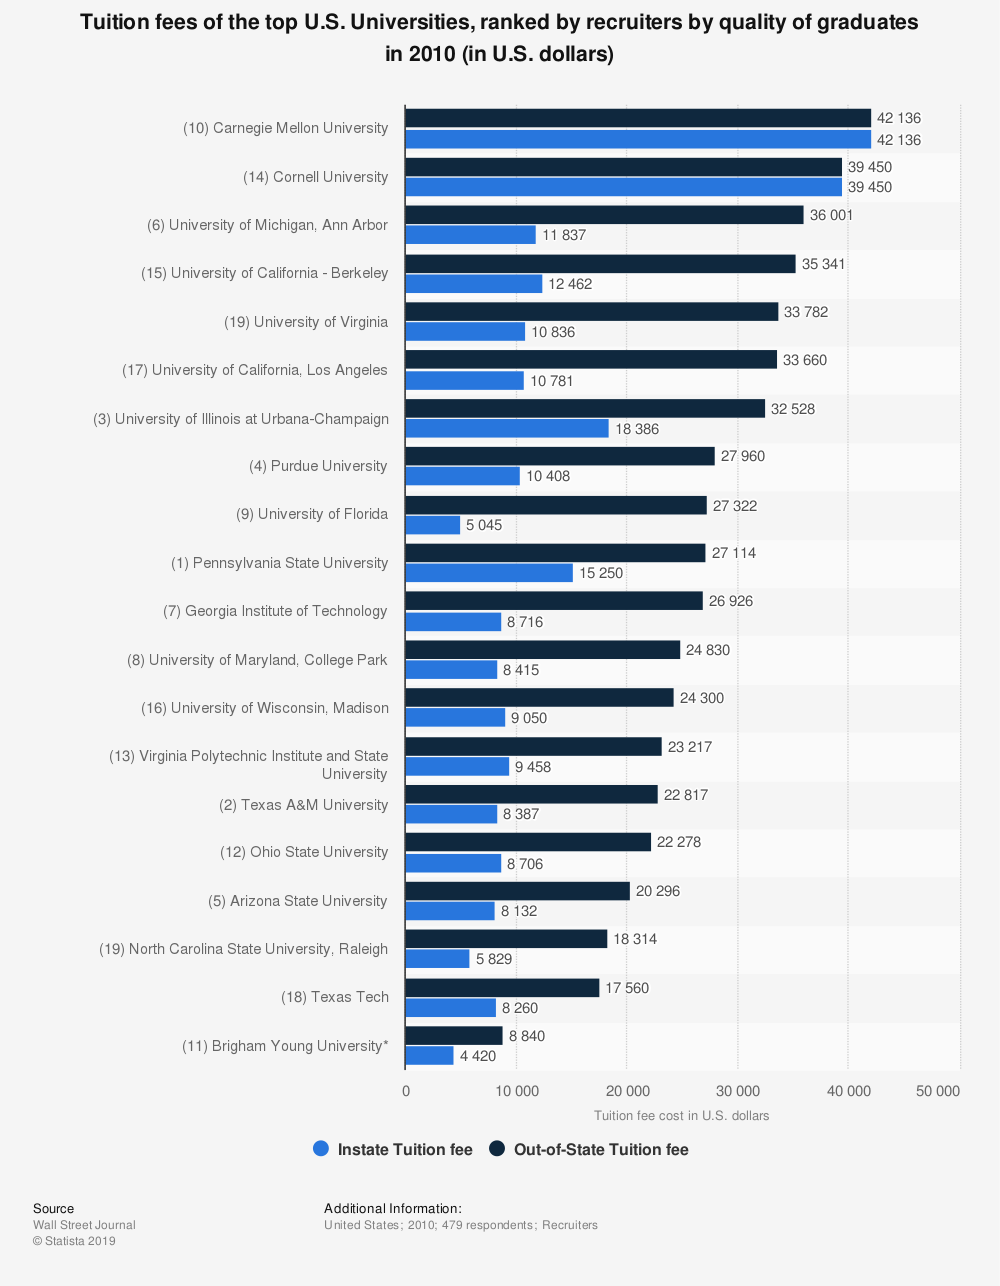 Statistic: Tuition fees of the top U.S. Universities, ranked by recruiters by quality of graduates in 2010 (in U.S. dollars) | Statista